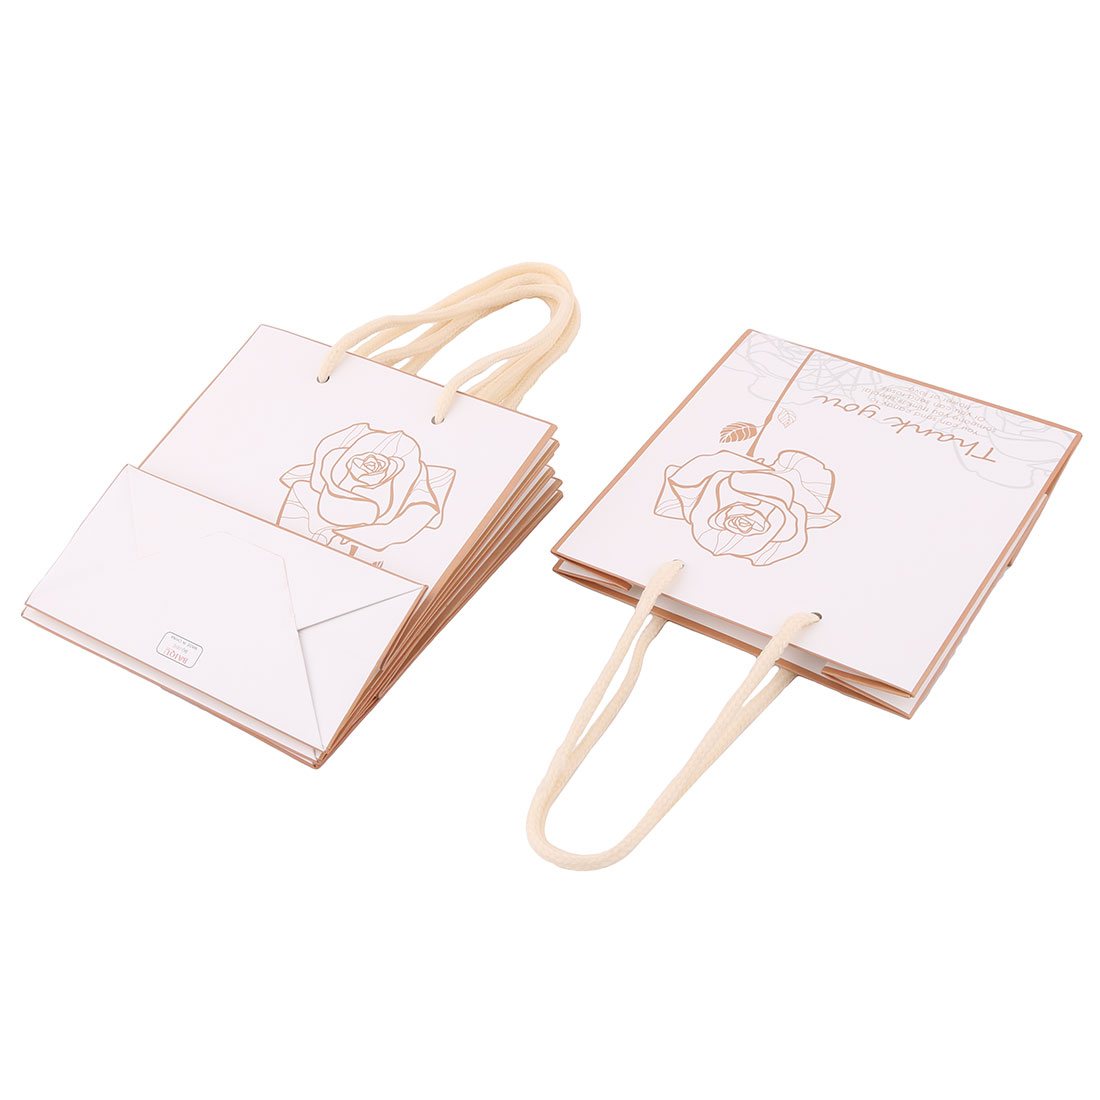 Boutique Retail Rose Pattern Foldable Holder Handbag Wrapper Gift Bags 4 PCS